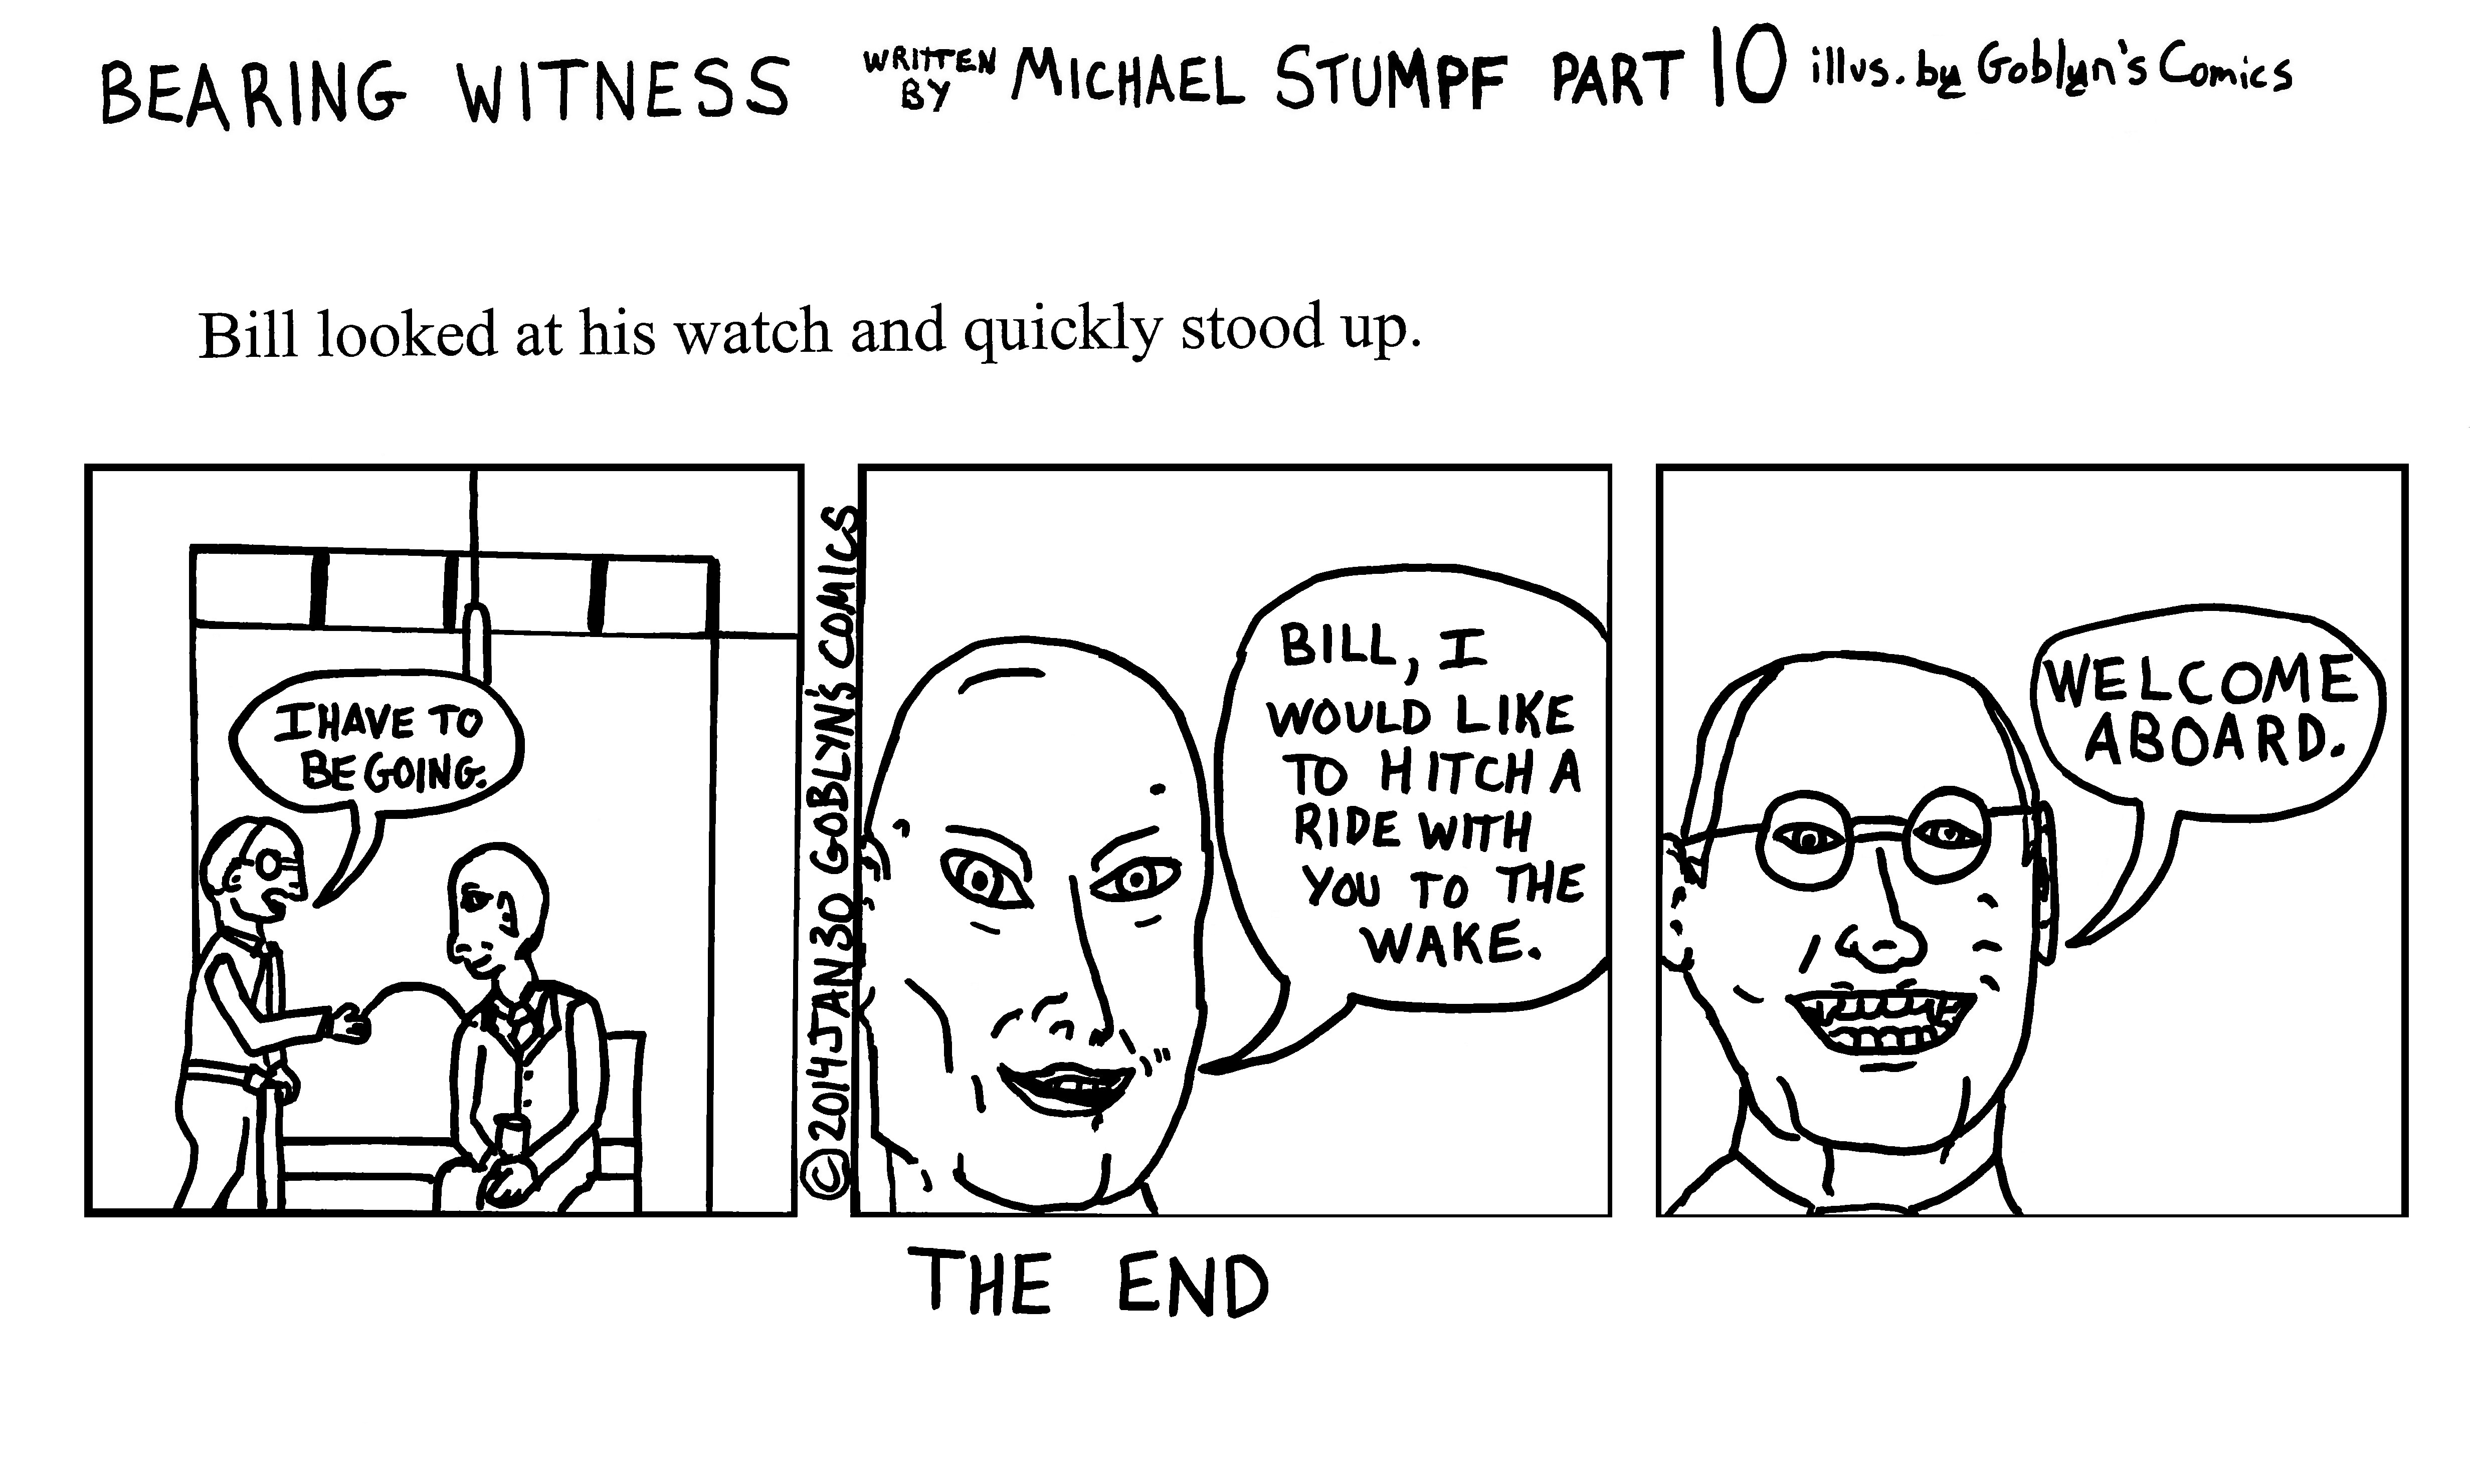 Bearing Witness by Michael Stumpf, illustrated by Goblyn's Comics Part 10